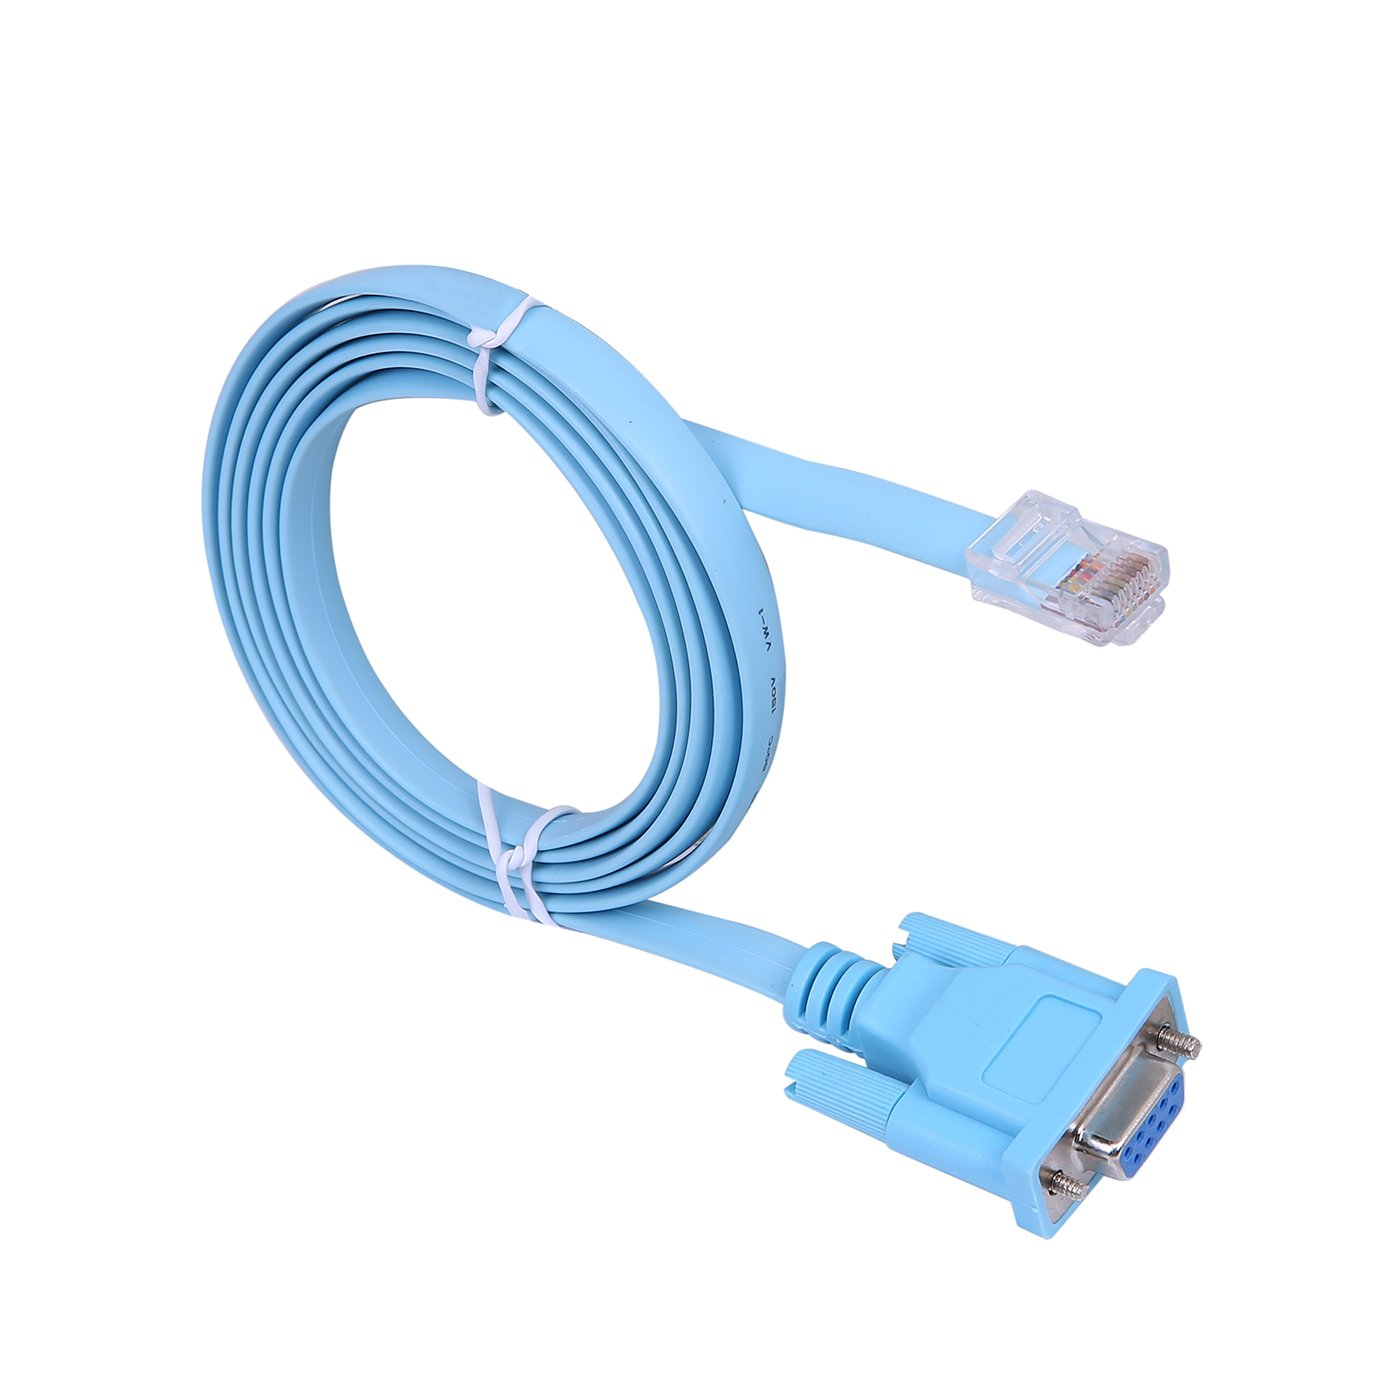 Best Rated In Cat 5 Ethernet Cables Helpful Customer Reviews Work Cable Wiring Diagram Addition Ether Crossover Hde 9 Pin Db9 Serial Rs232 Port To Rj45 Cat5 Lan Rollover Console